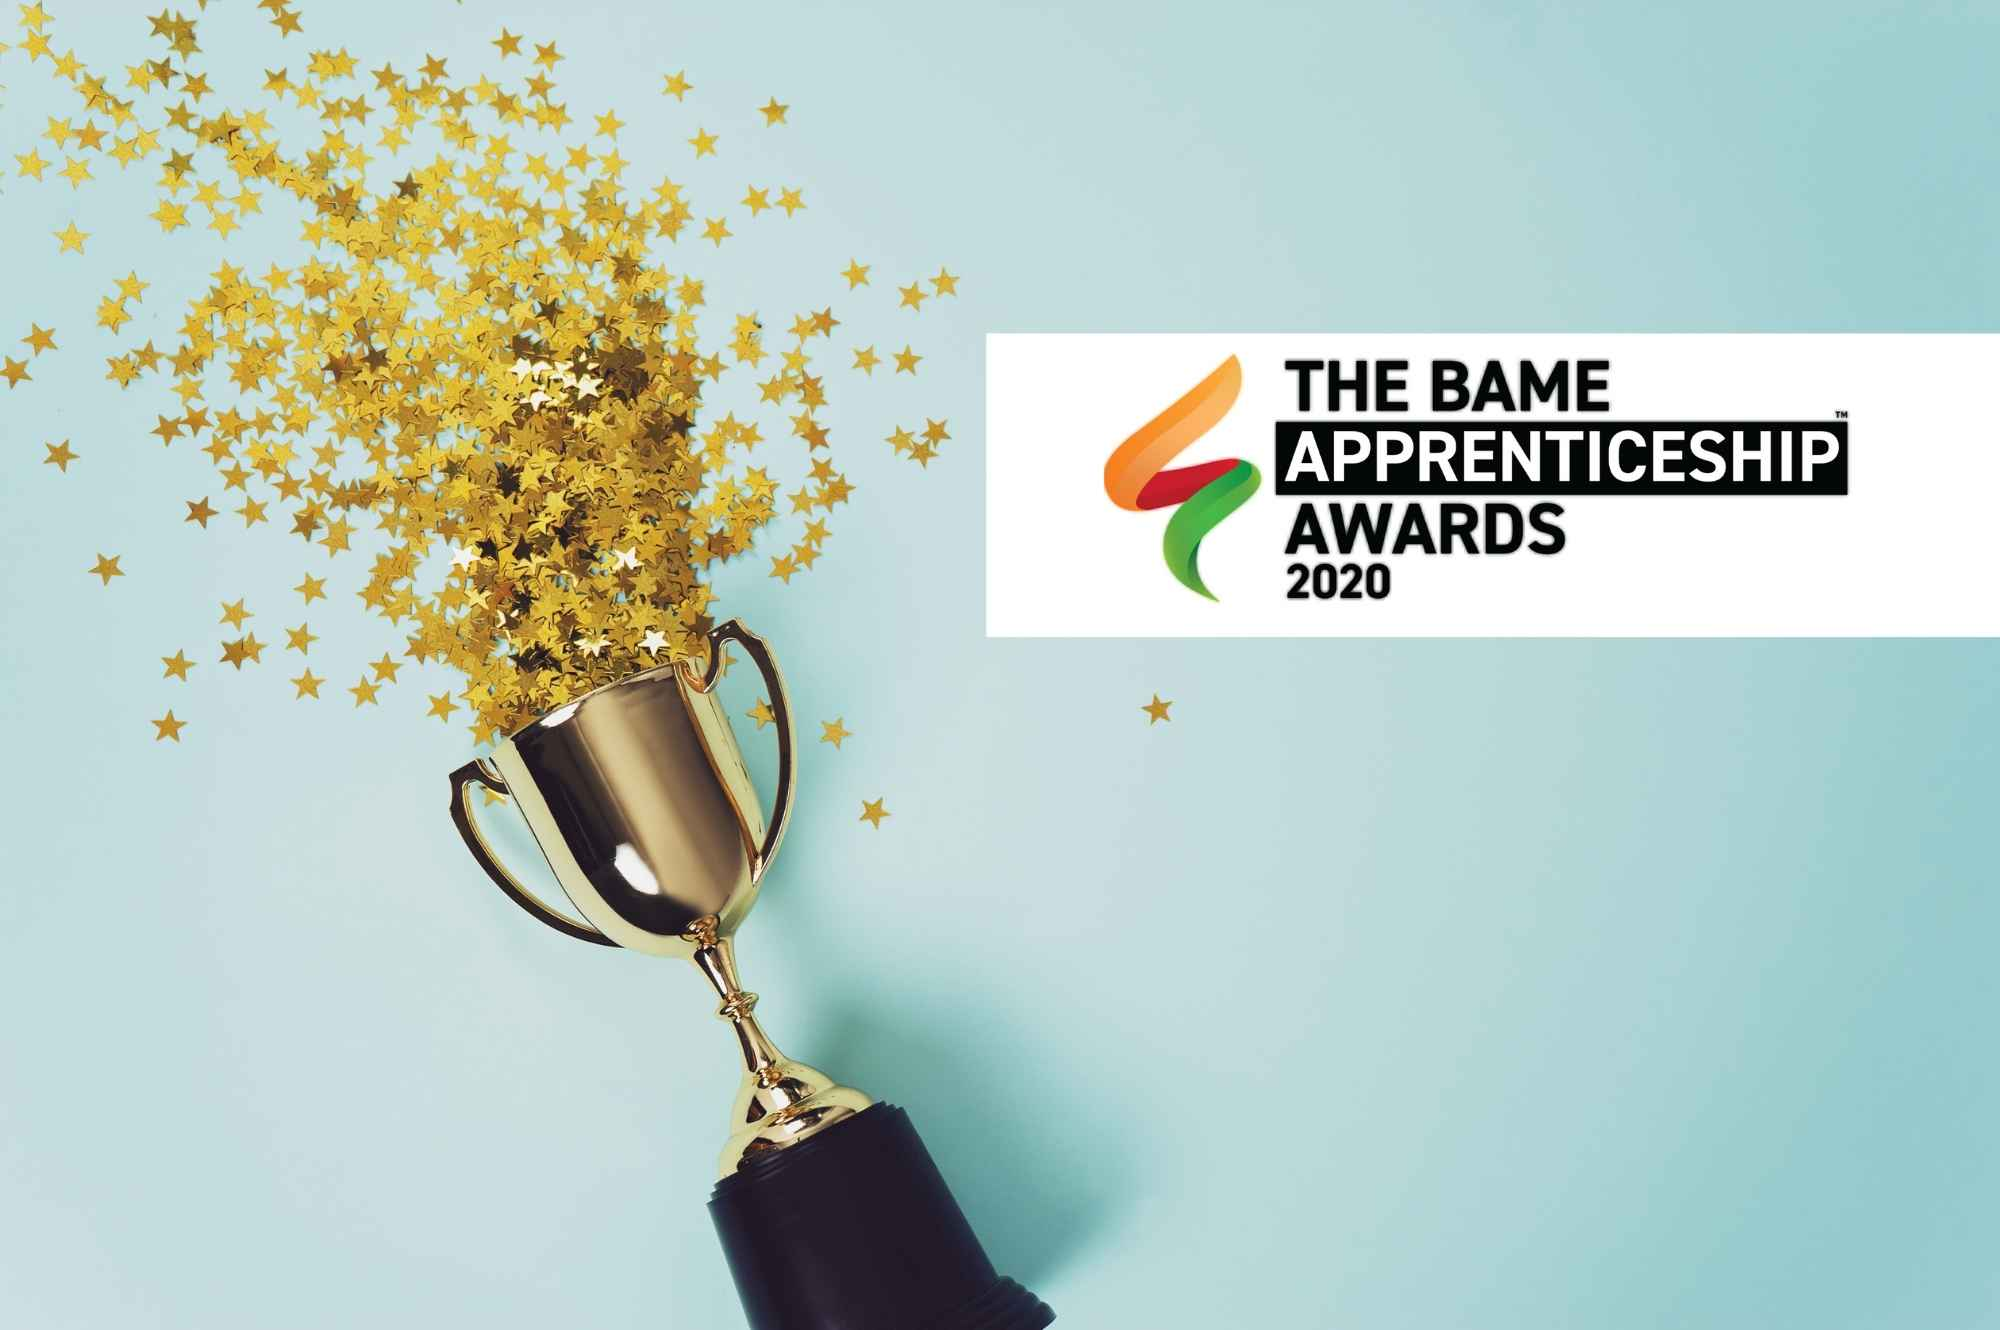 Watch the BAME Apprenticeship Awards 2020